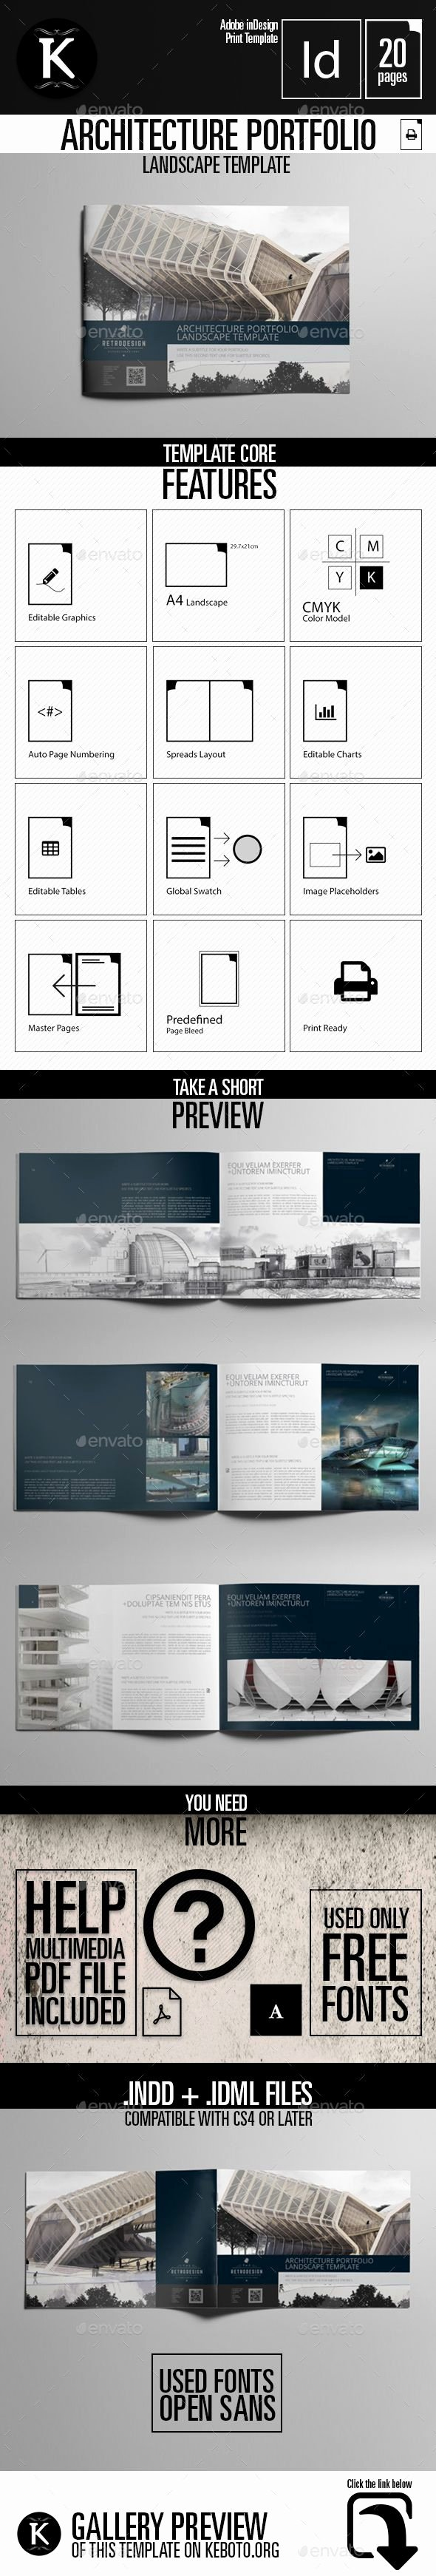 Architecture Portfolio Template Indesign Best Of Landscape Architecture Portfolio issuu Download Books